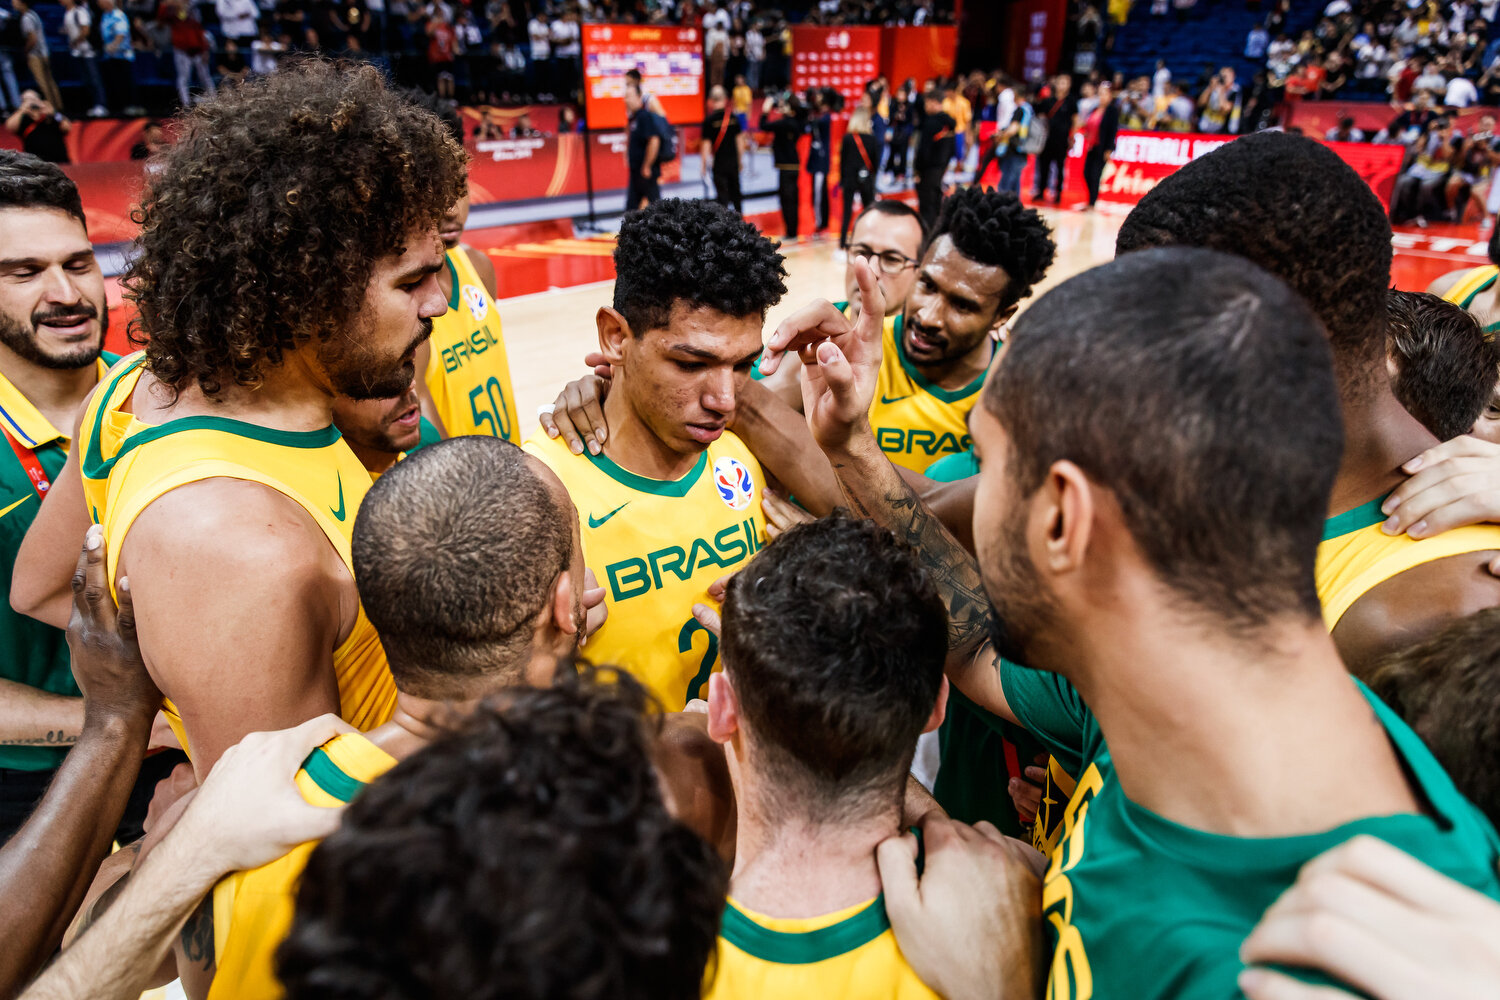 Brazil displayed an amazing culture within the team as they cheered for Louzada who was disappointed about an ill-advised foul he committed that gave Greece a chance to win the game. It's moments like these that continue to reinforce why I love this game. All rights reserved (Mandatory photo credit: Jon Lopez / FIBA )